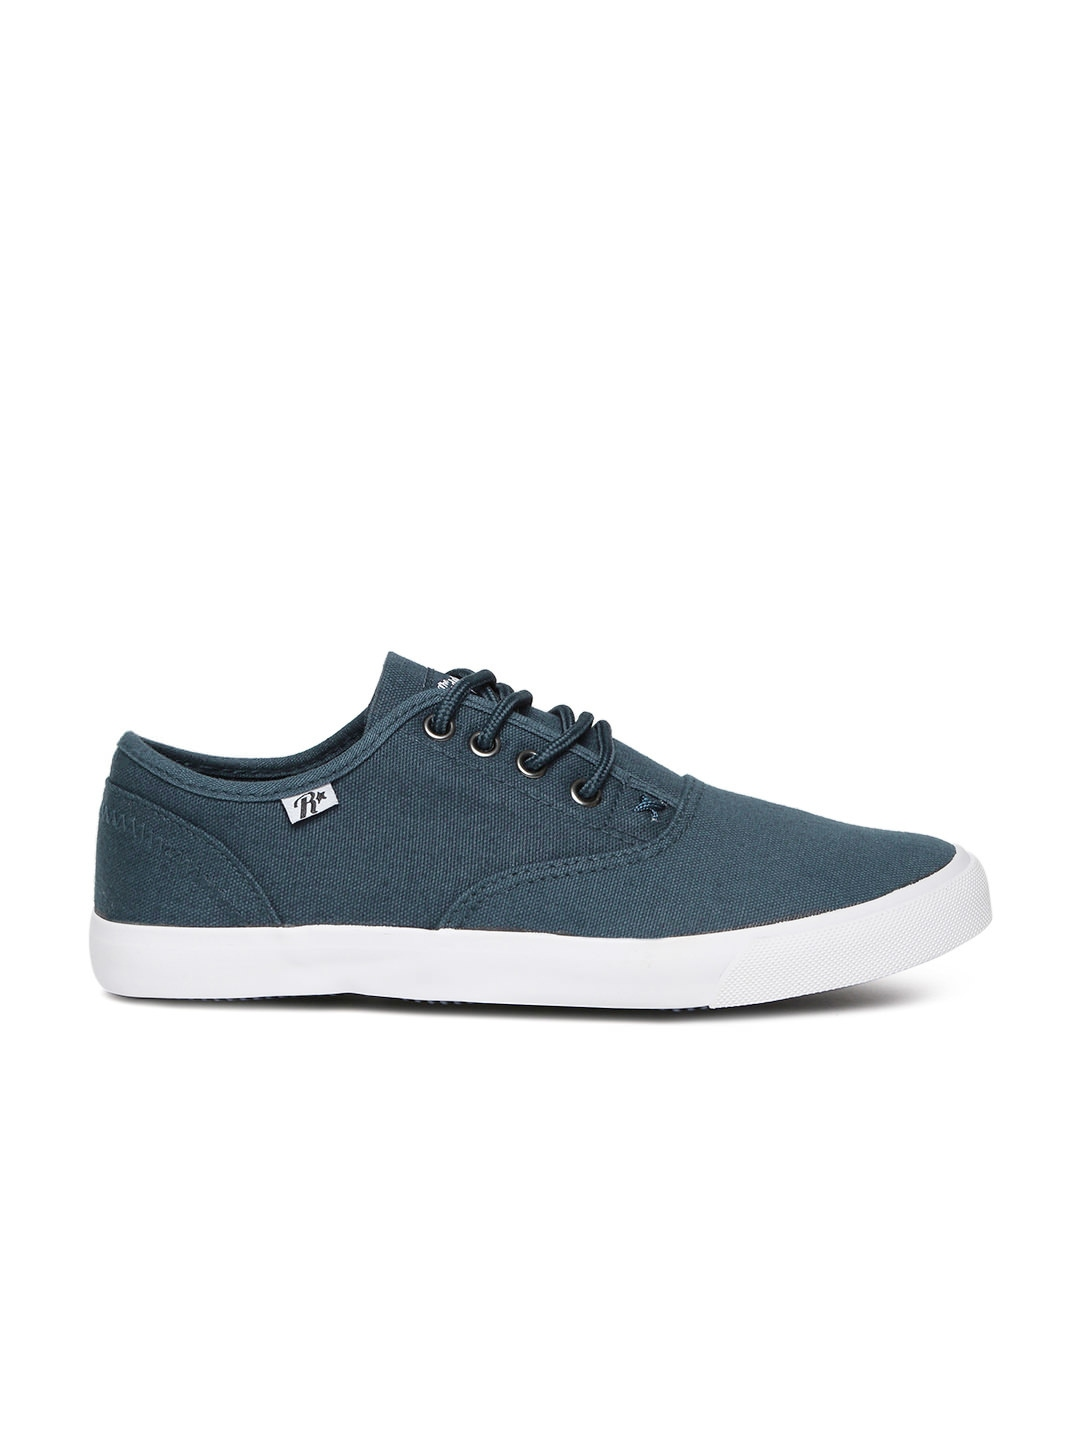 myntra roadster navy canvas shoes 633399 buy myntra